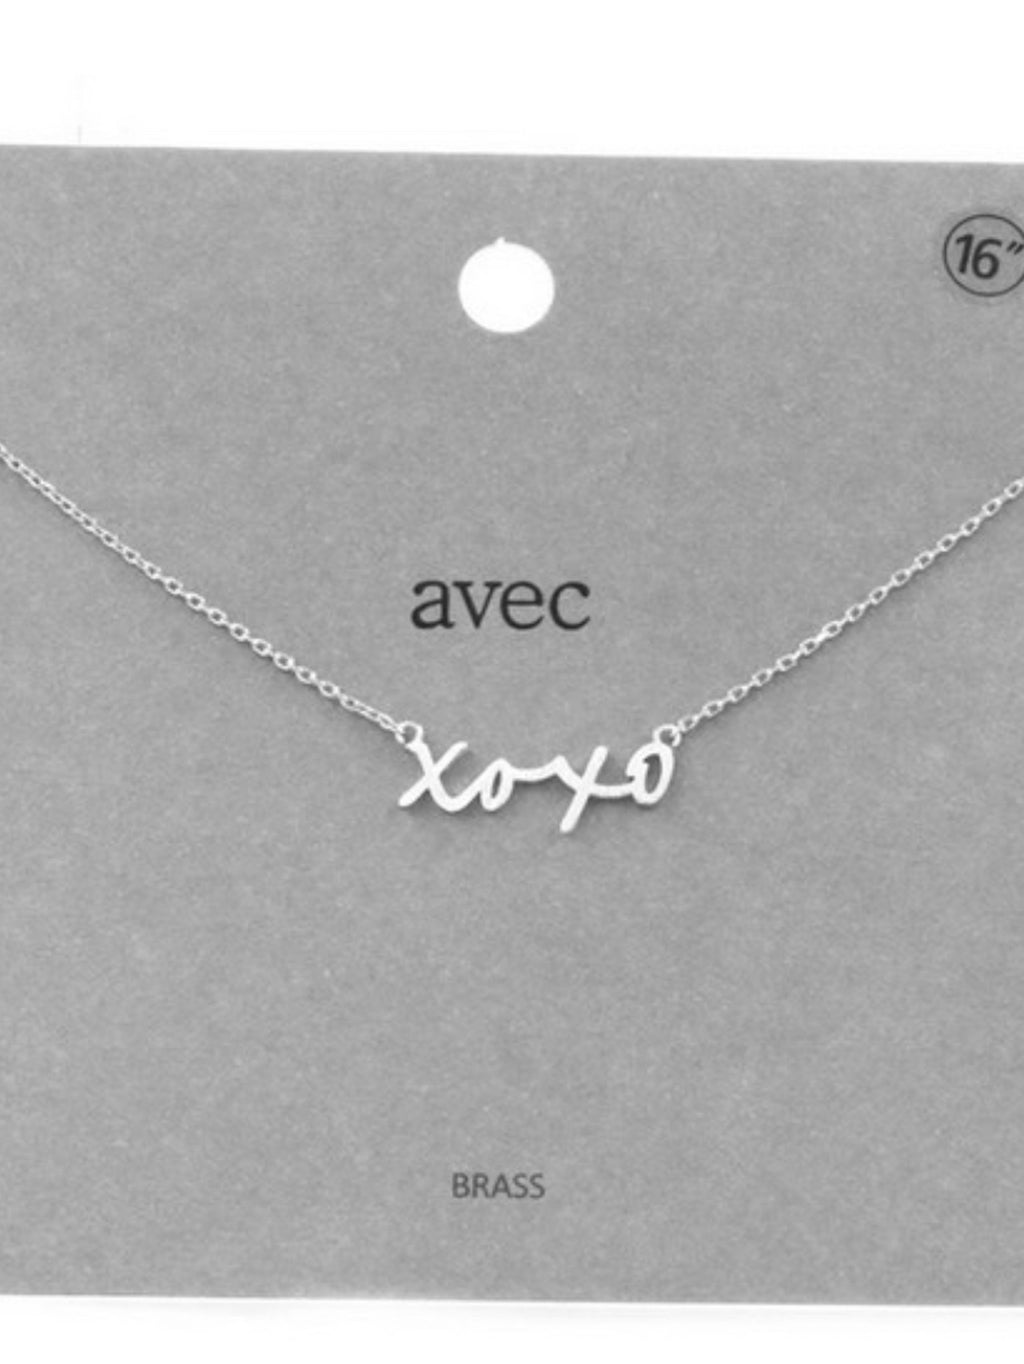 XOXO Pendant Necklace